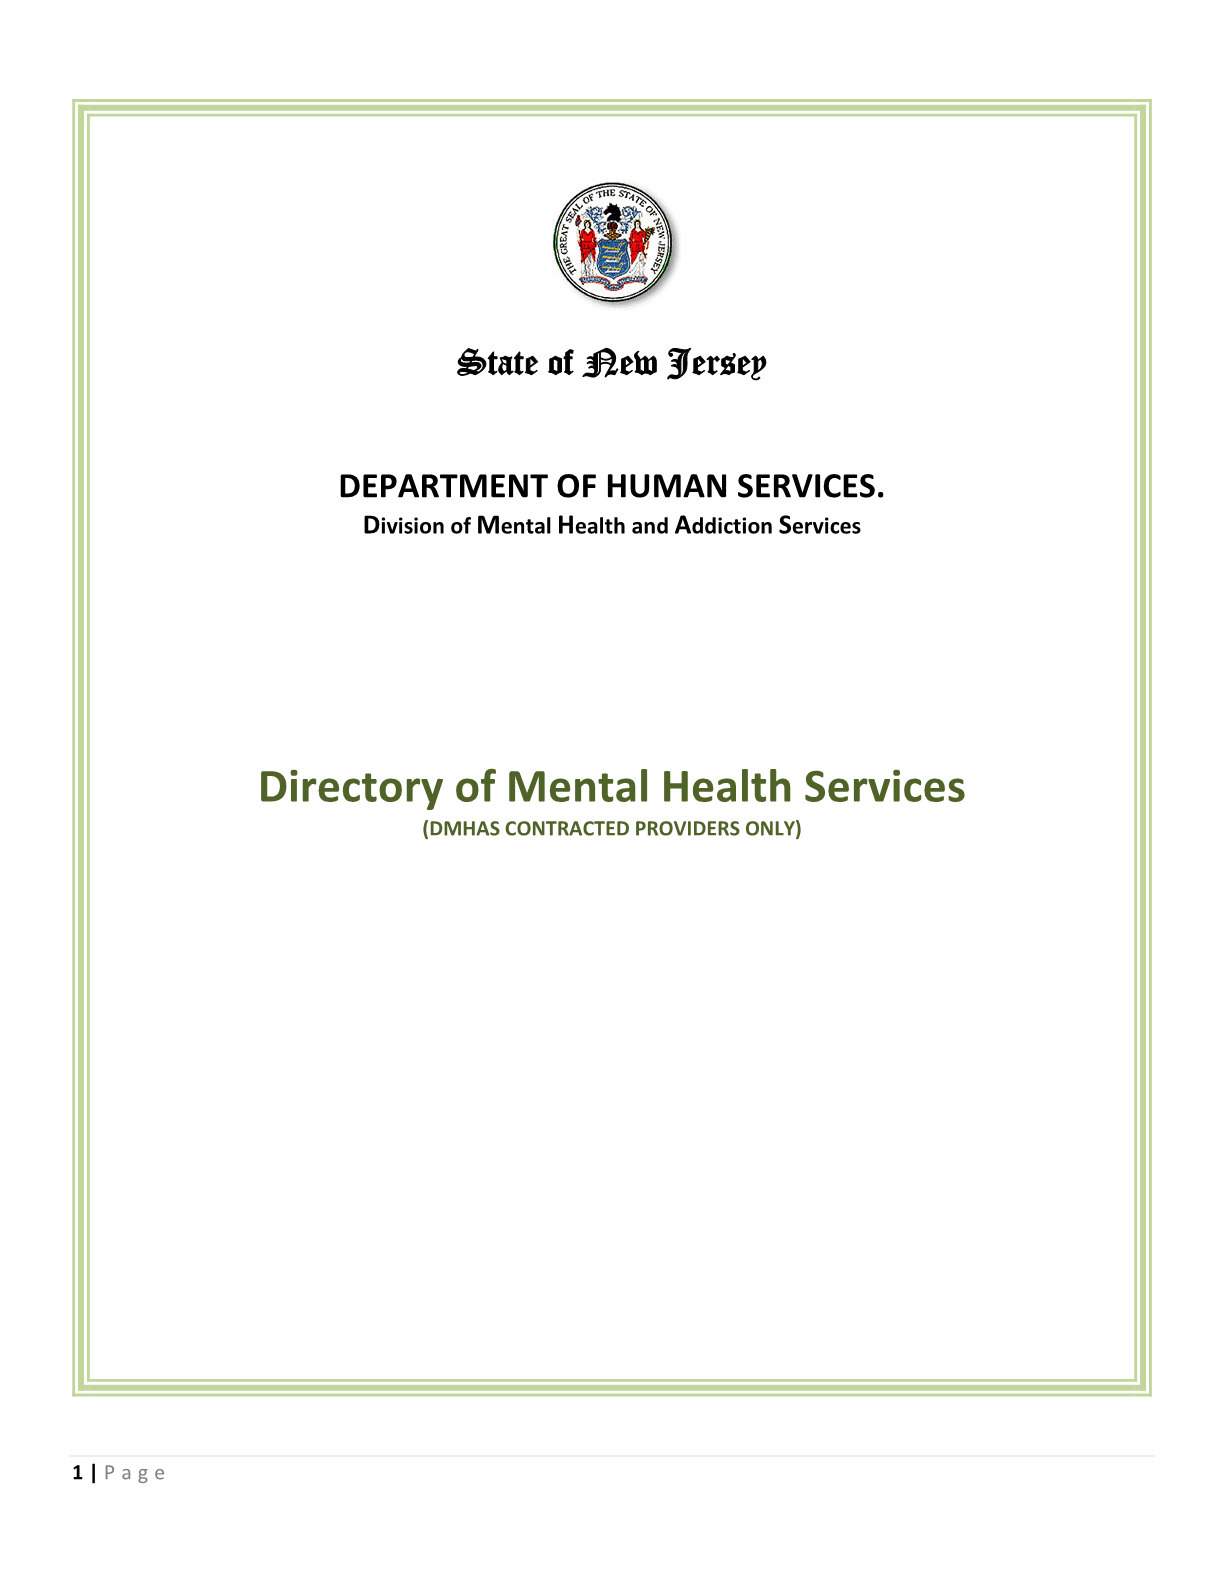 Department of Human Services - Division of Mental Health and Addiction Services (DMHAS): Directory of Mental Health Services